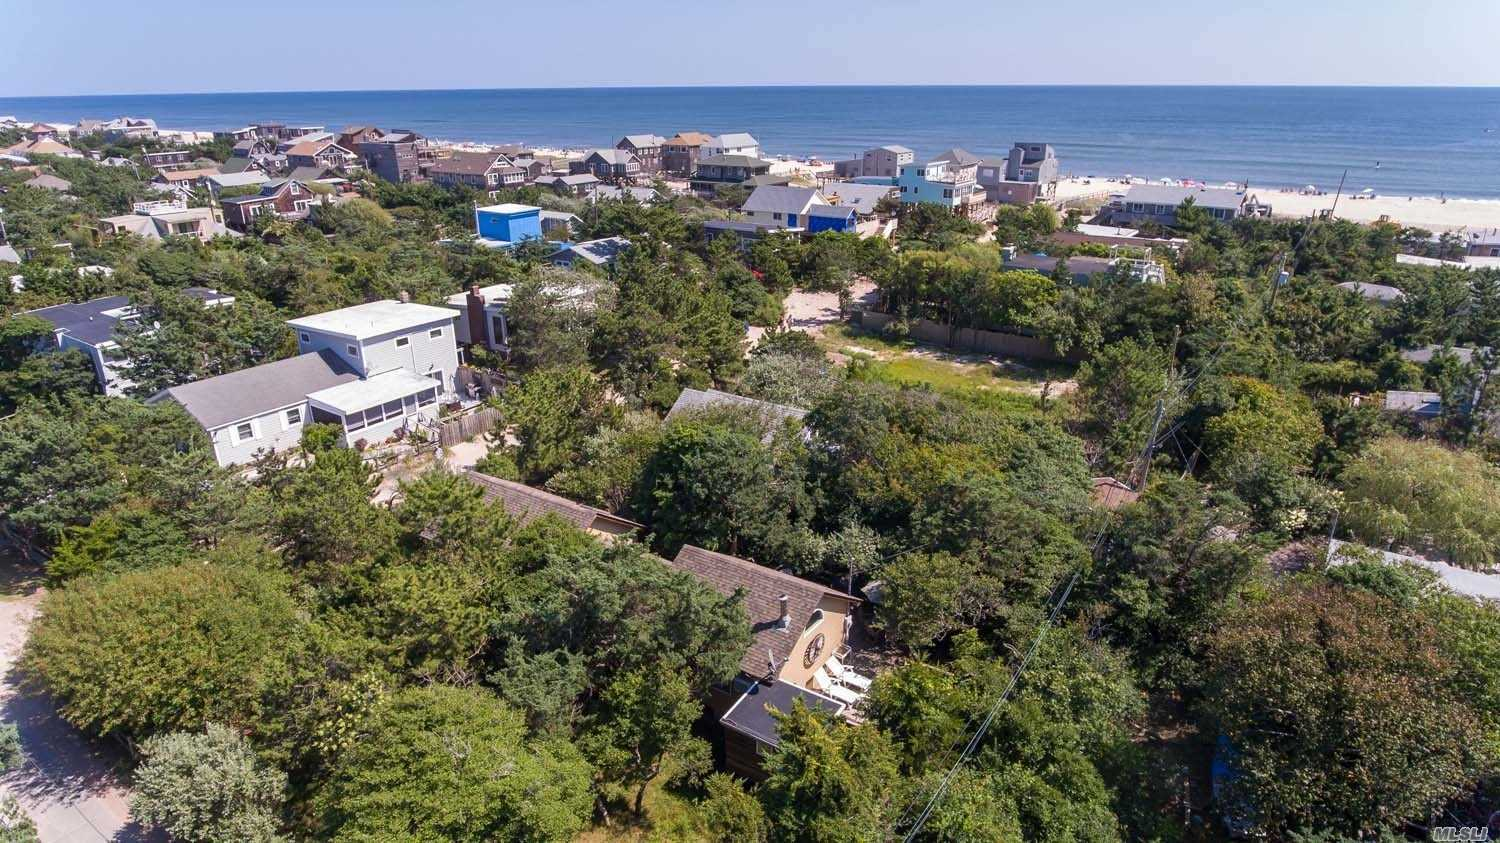 Fabulous Proximity To The Beach! Move In And Live The Life. You Can Build Up And Enjoy The Beautiful View Of The Bay And Ocean! 75 X 100 Property With Room To Put In A Pool Oasis!